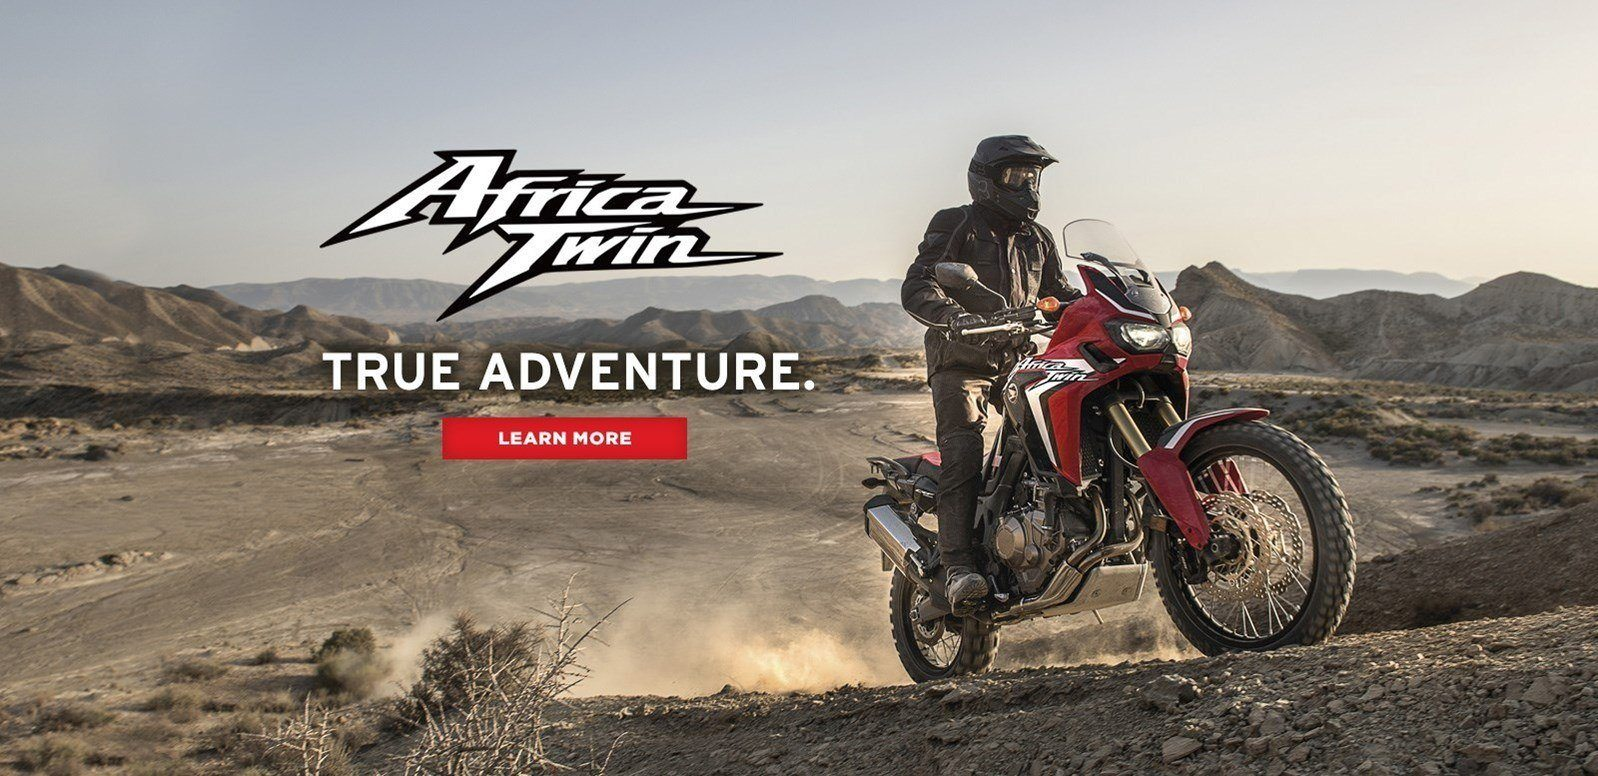 africatwin_1